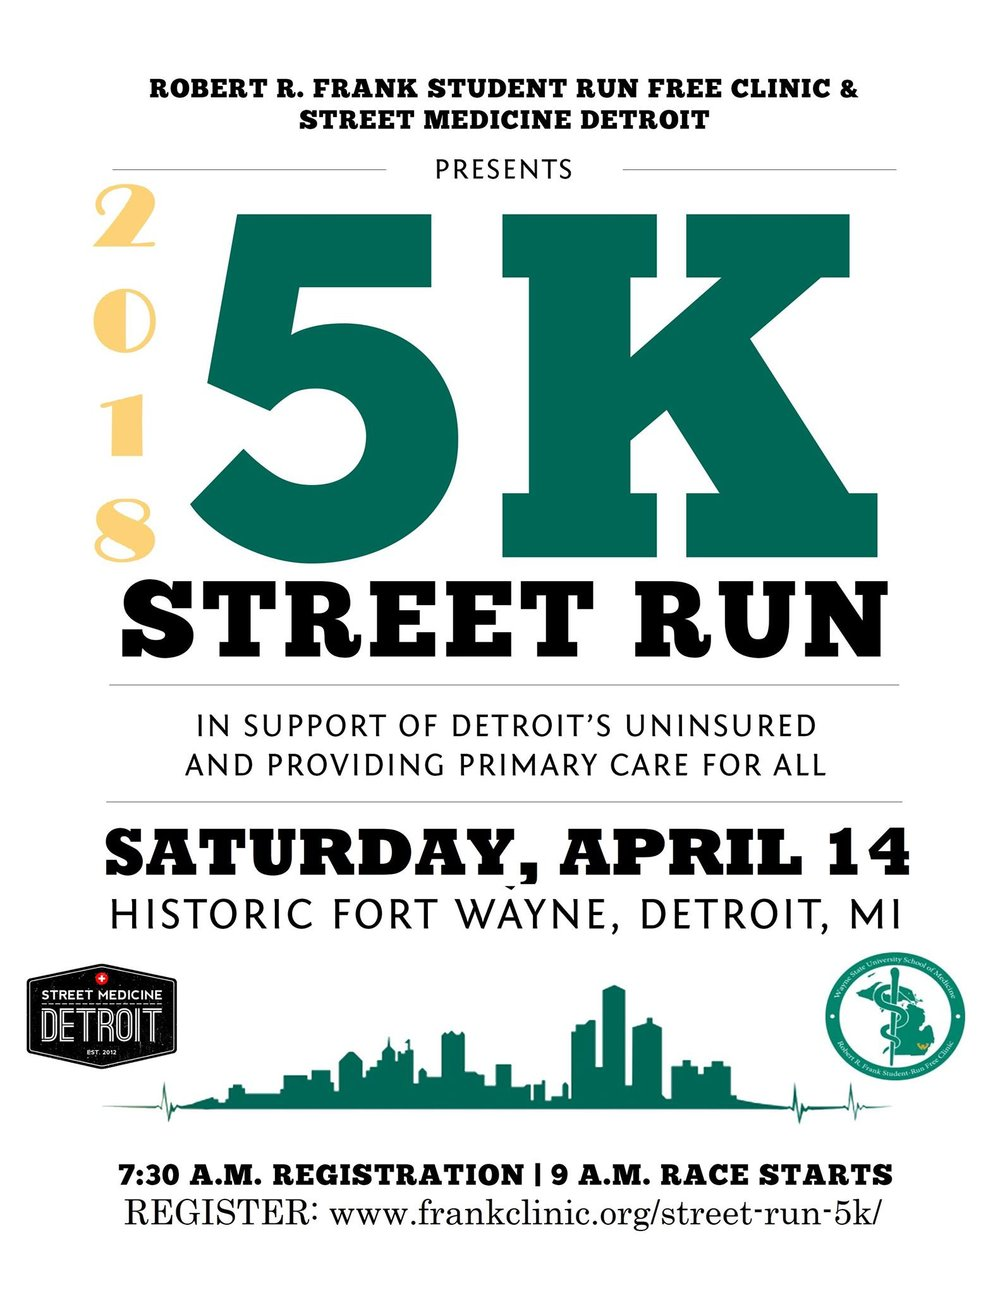 FOR MORE INFORMATION OR TO REGISTER PLEASE VISIT WWW.FRANKCLINIC.ORG/STREET-RUN-5K/